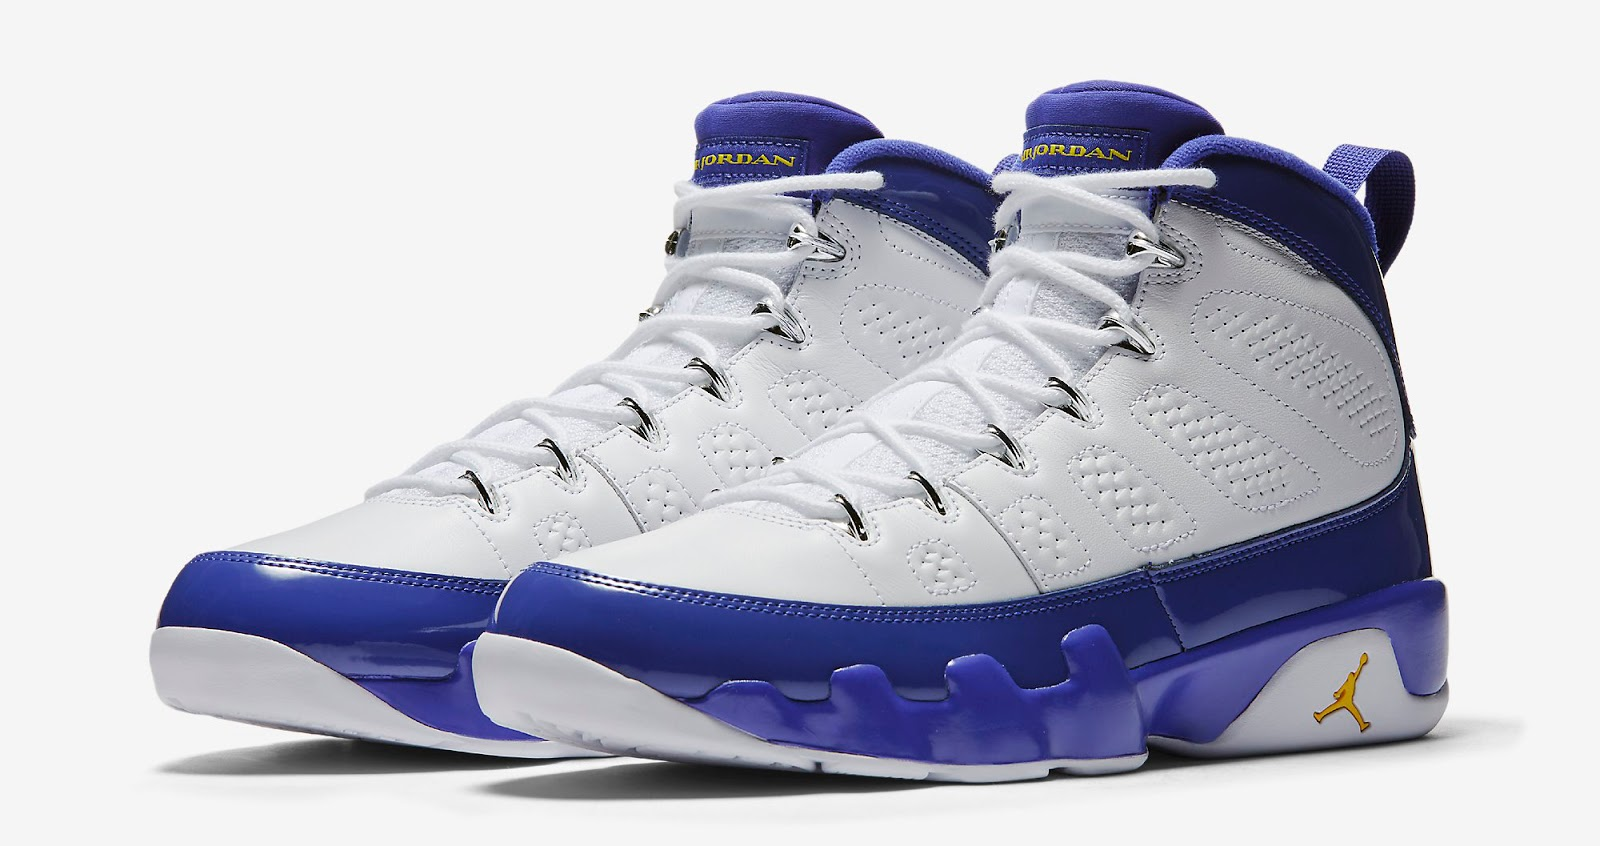 66a7f6c5b6381d ajordanxi Your  1 Source For Sneaker Release Dates  Air Jordan 9 Retro